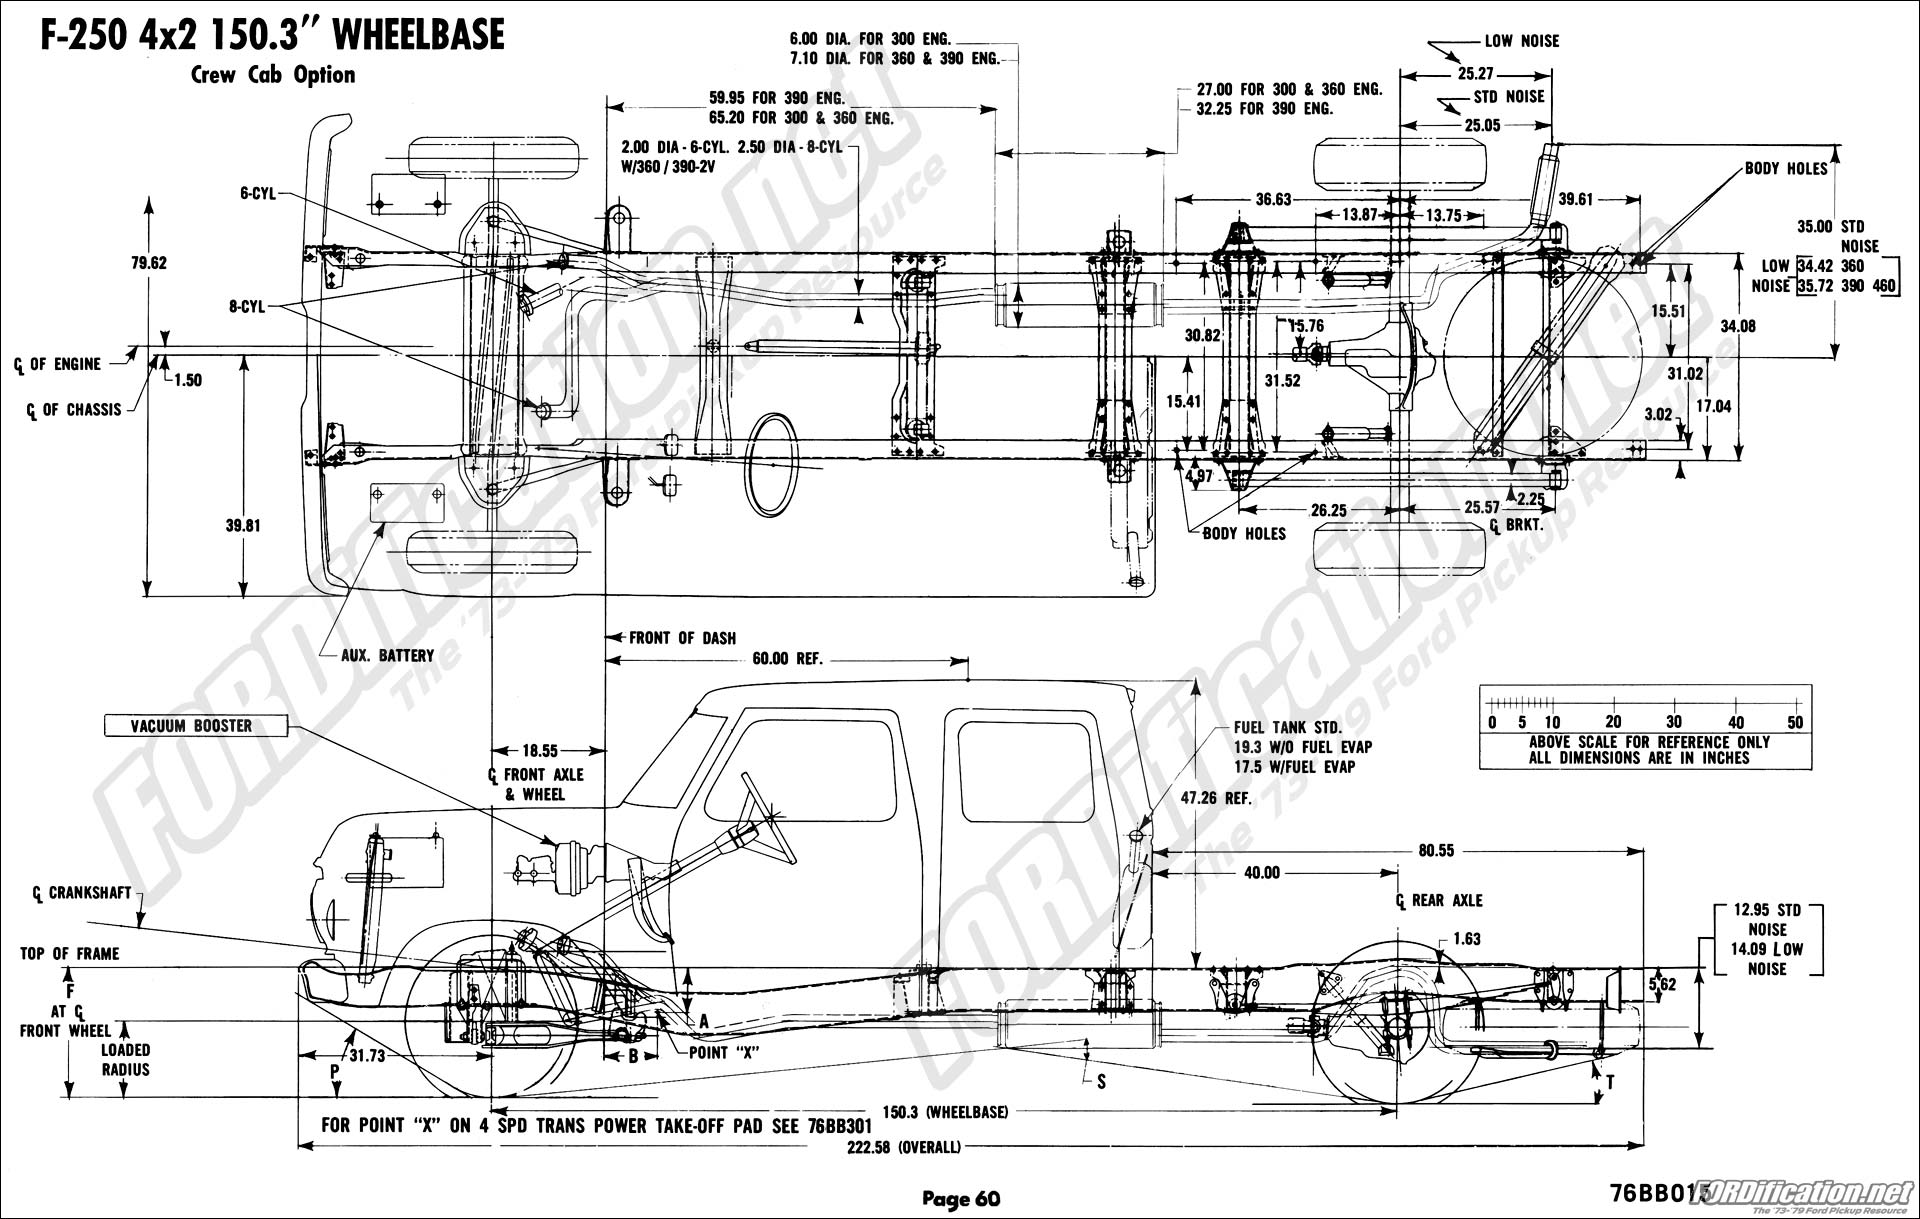 1976 Ford F250 Wiring Diagram from fordification.net